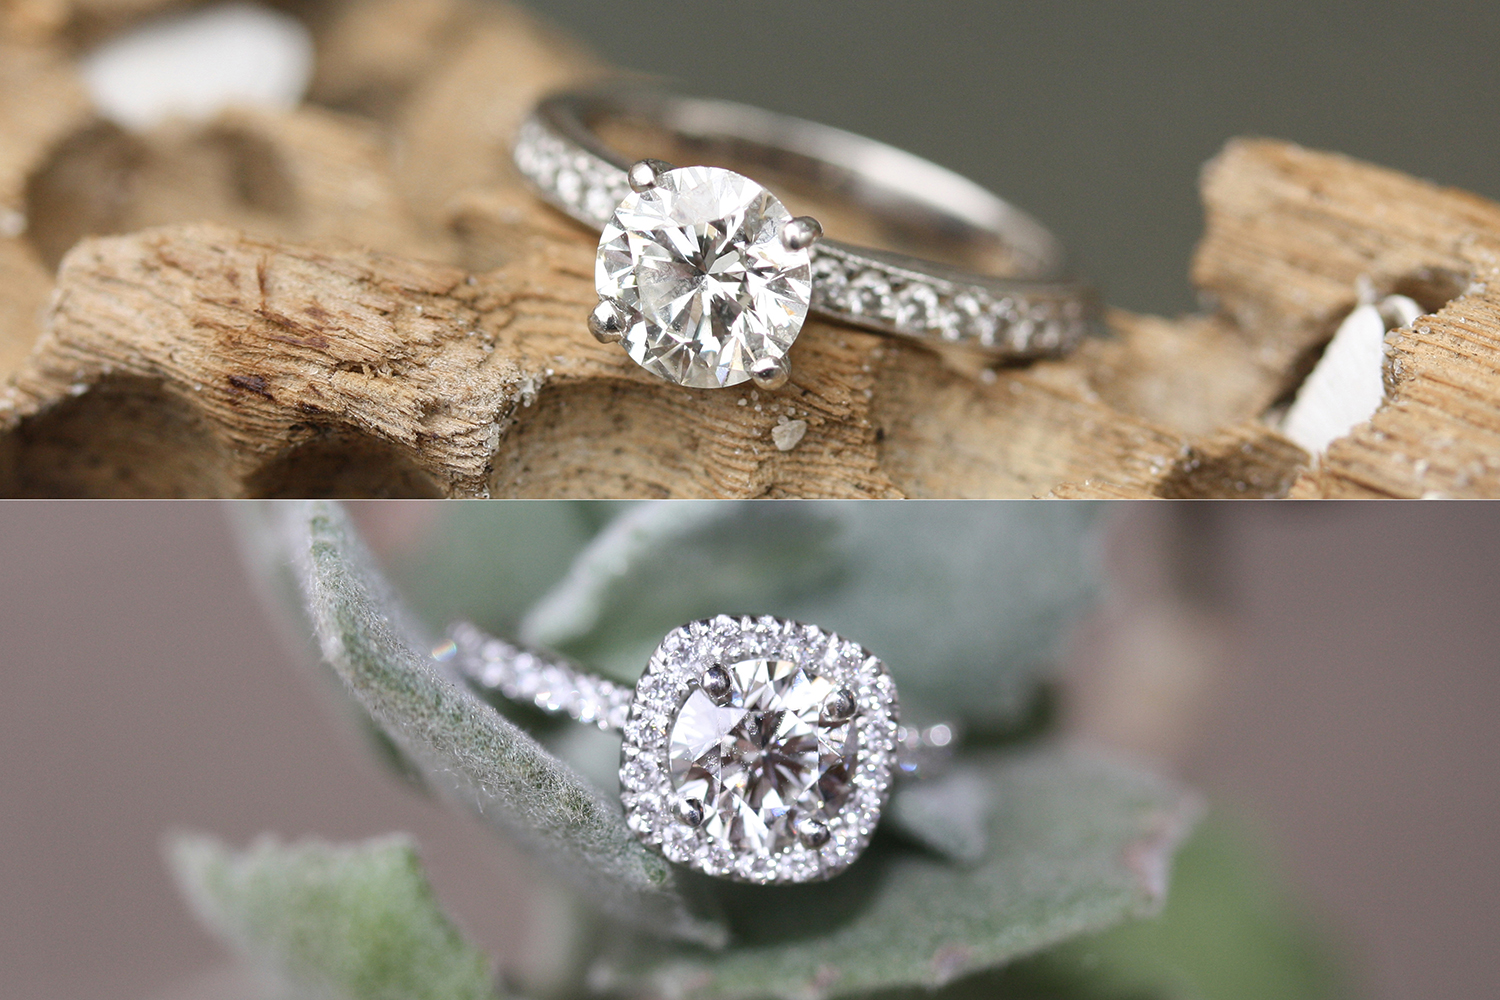 Rachelle+Reinvented+Engagement+Ring+Before+&+After.jpg